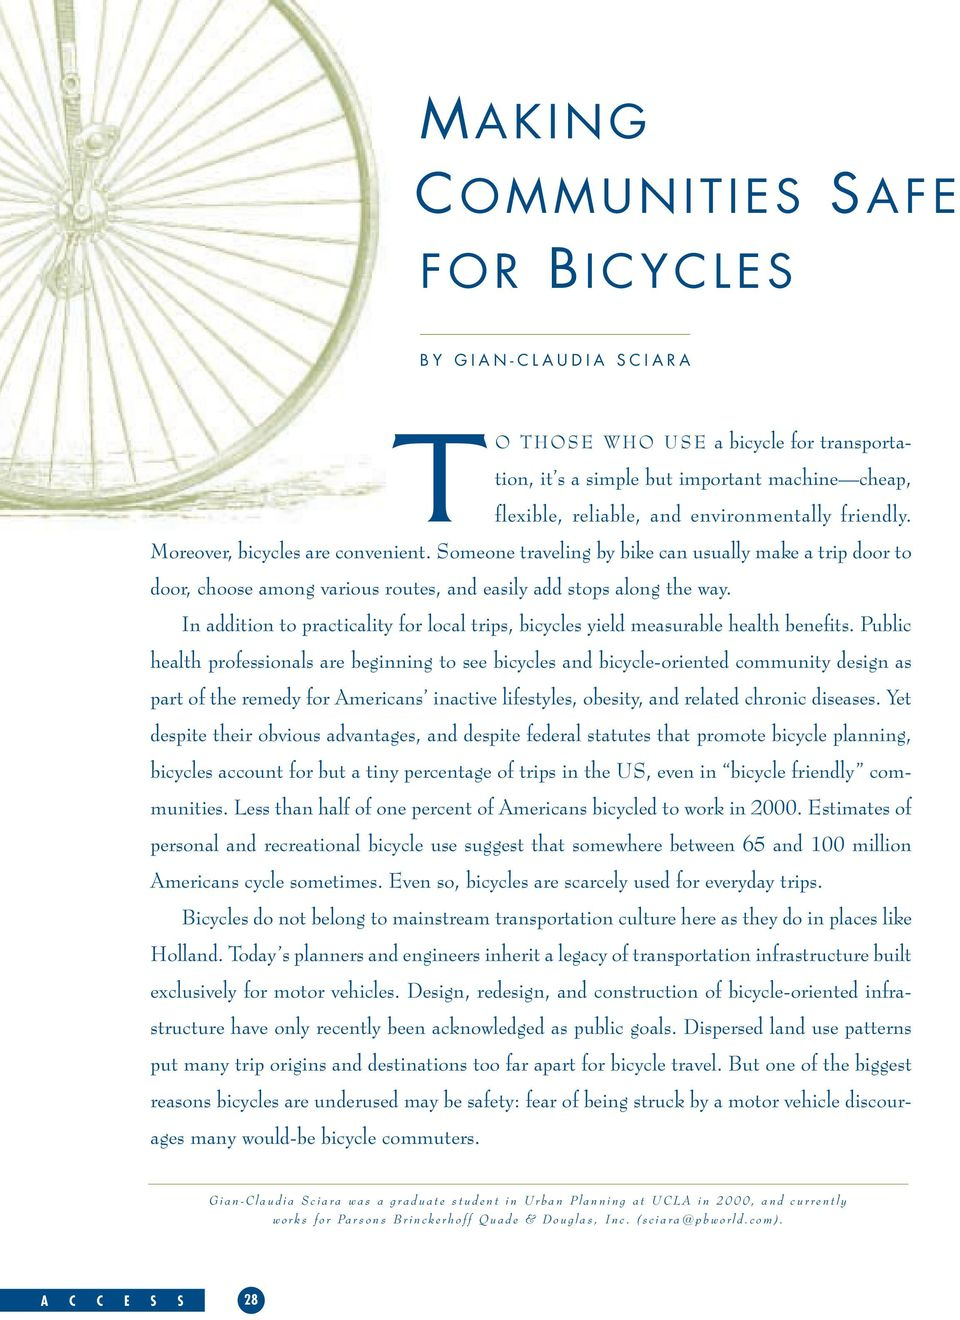 In addition to practicality for local trips, bicycles yield measurable health benefits.